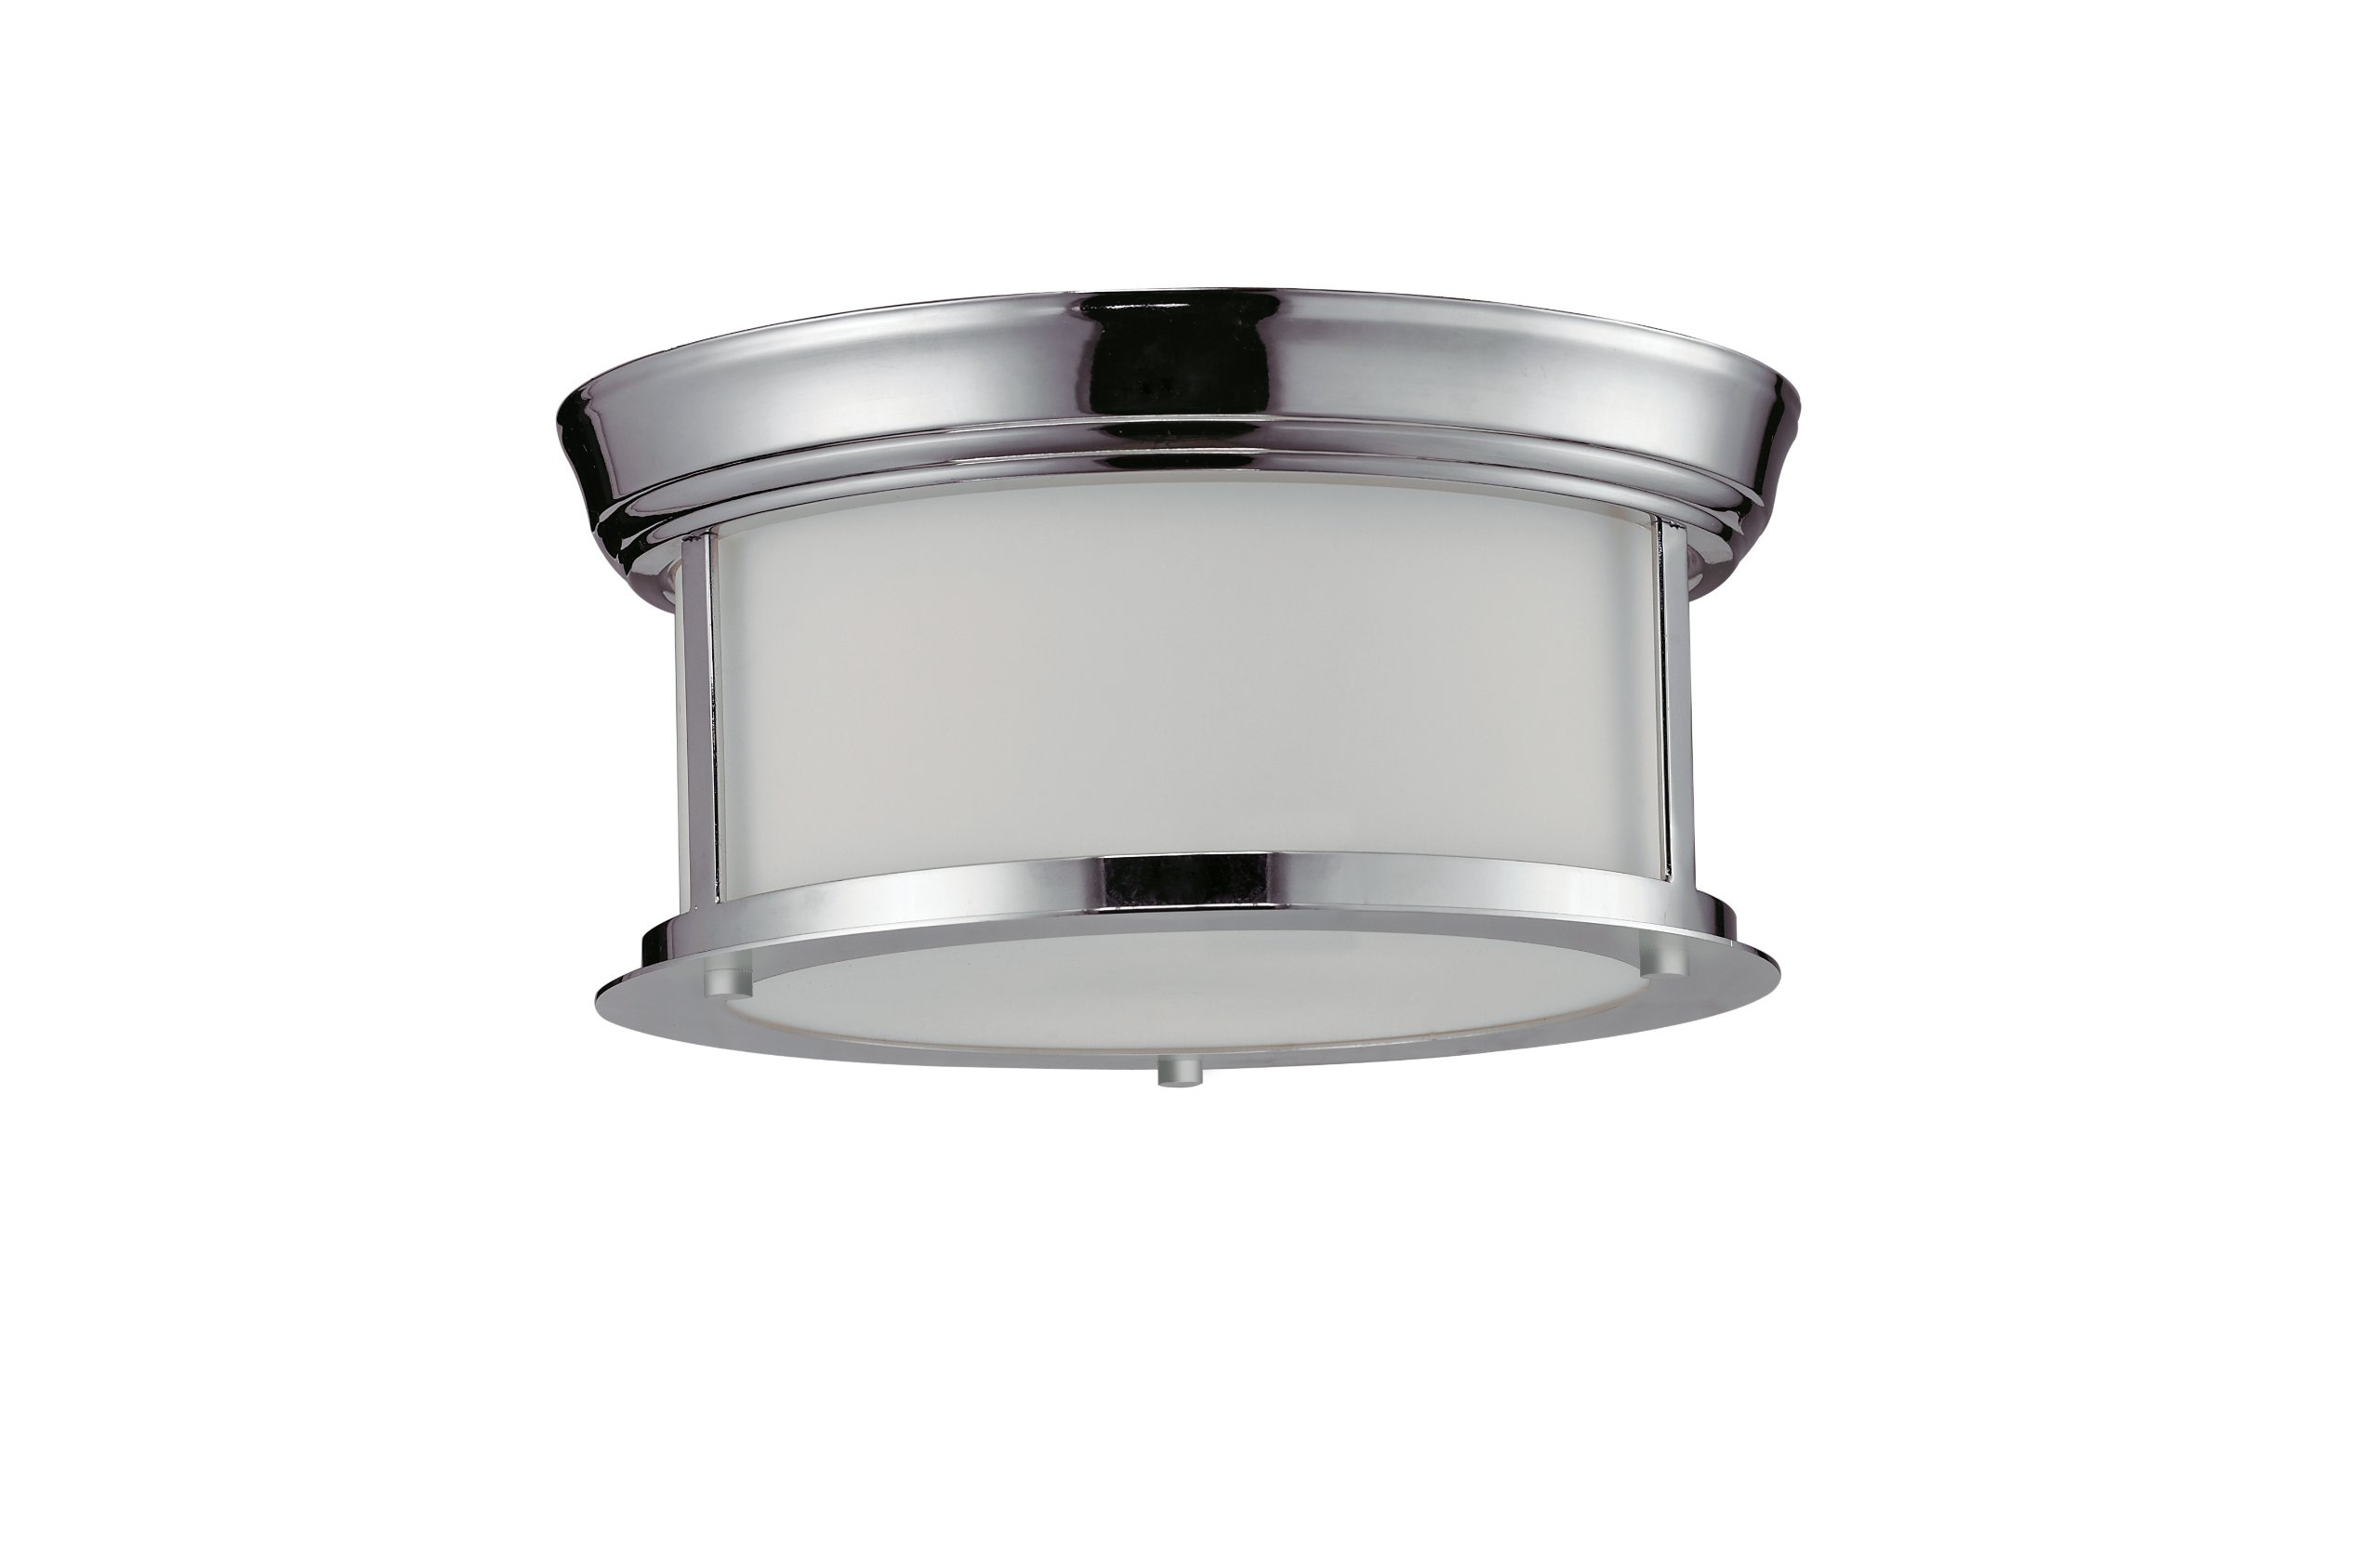 Z-Lite 2003F10-CH Sonna Two Light Ceiling, Steel Frame, Chrome Finish and Matte Opal Shade of Glass Material